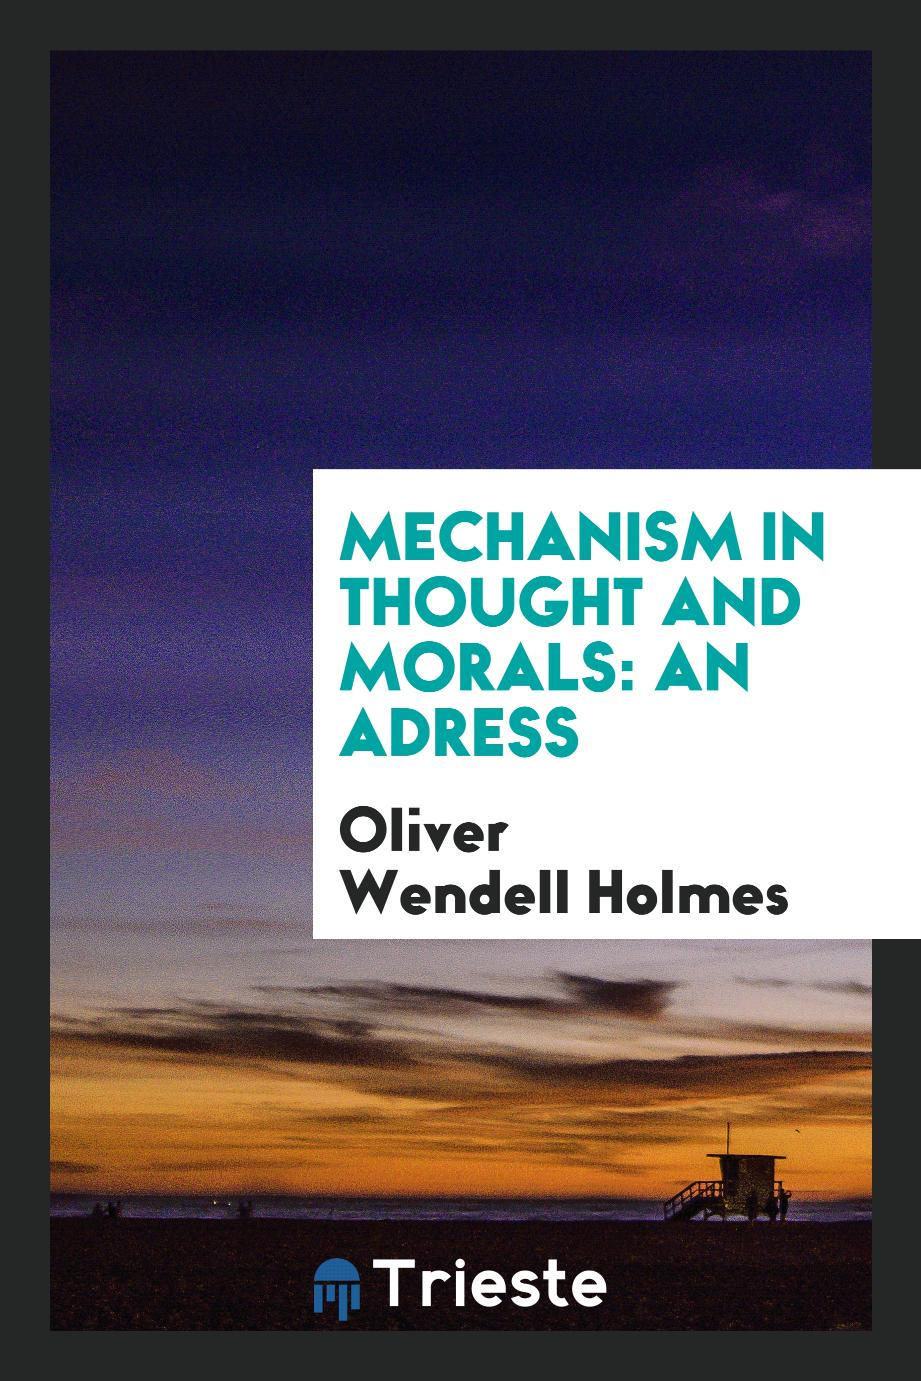 Mechanism in Thought and Morals: An Adress